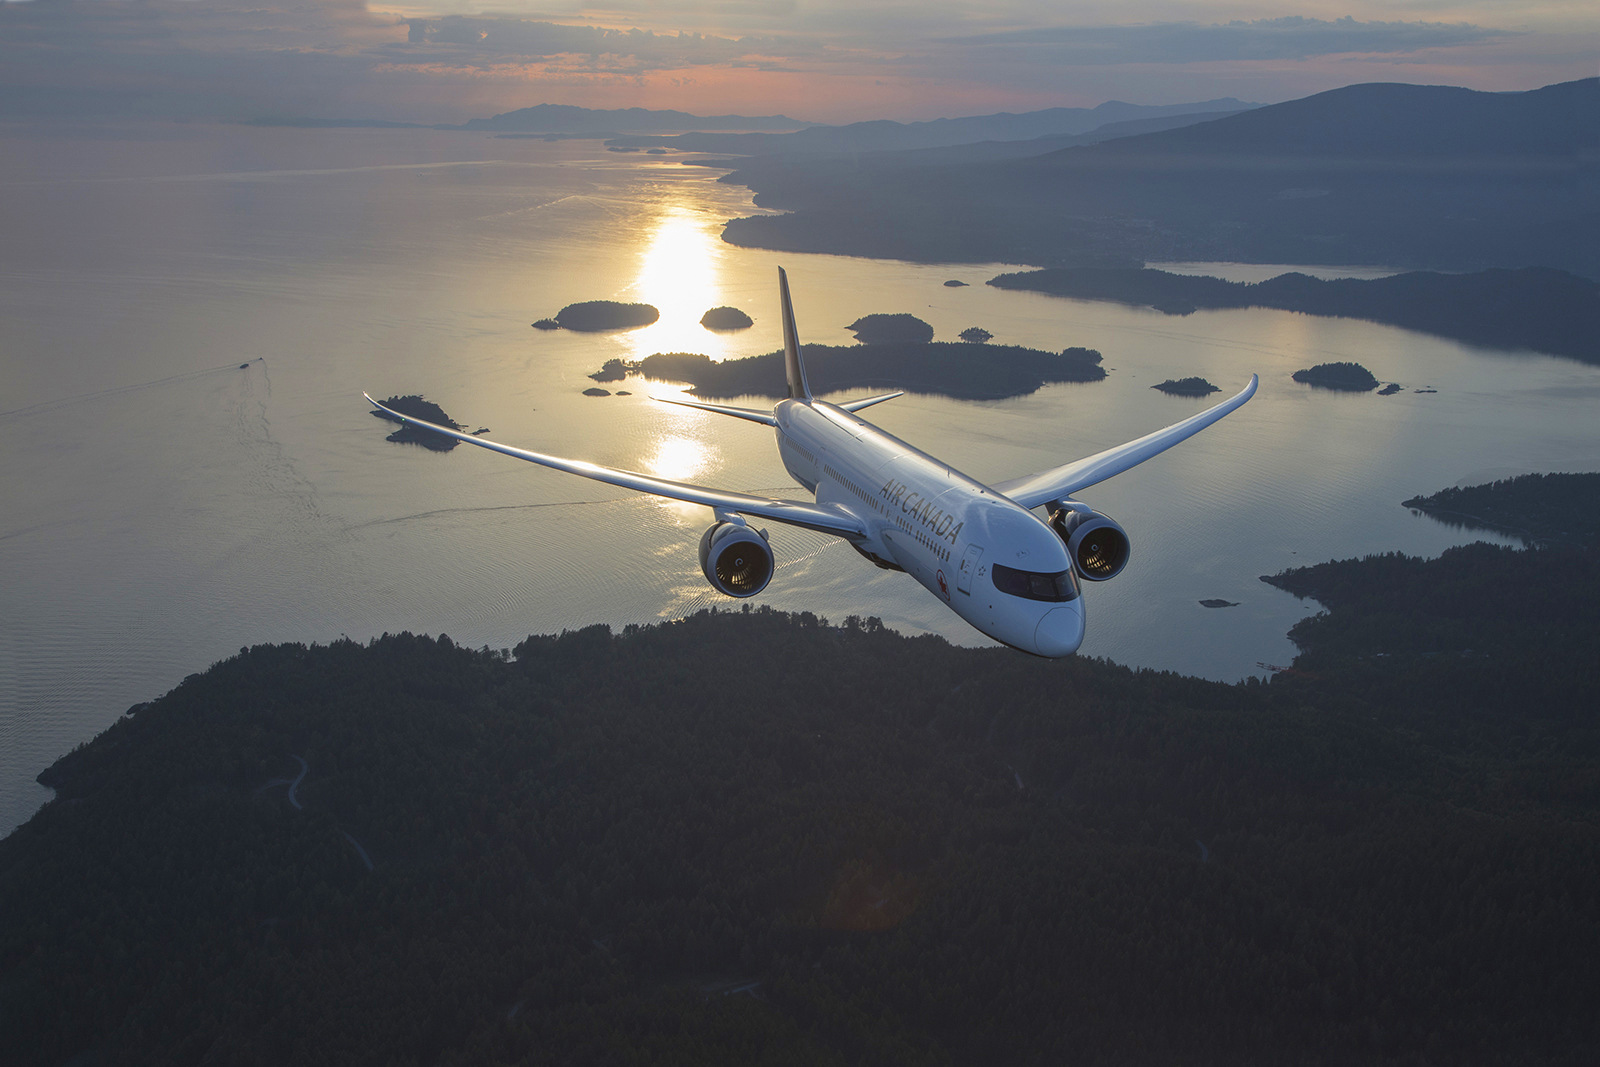 One of the amazing photos of the 787-9. Photo: Brian Losito / Air Canada